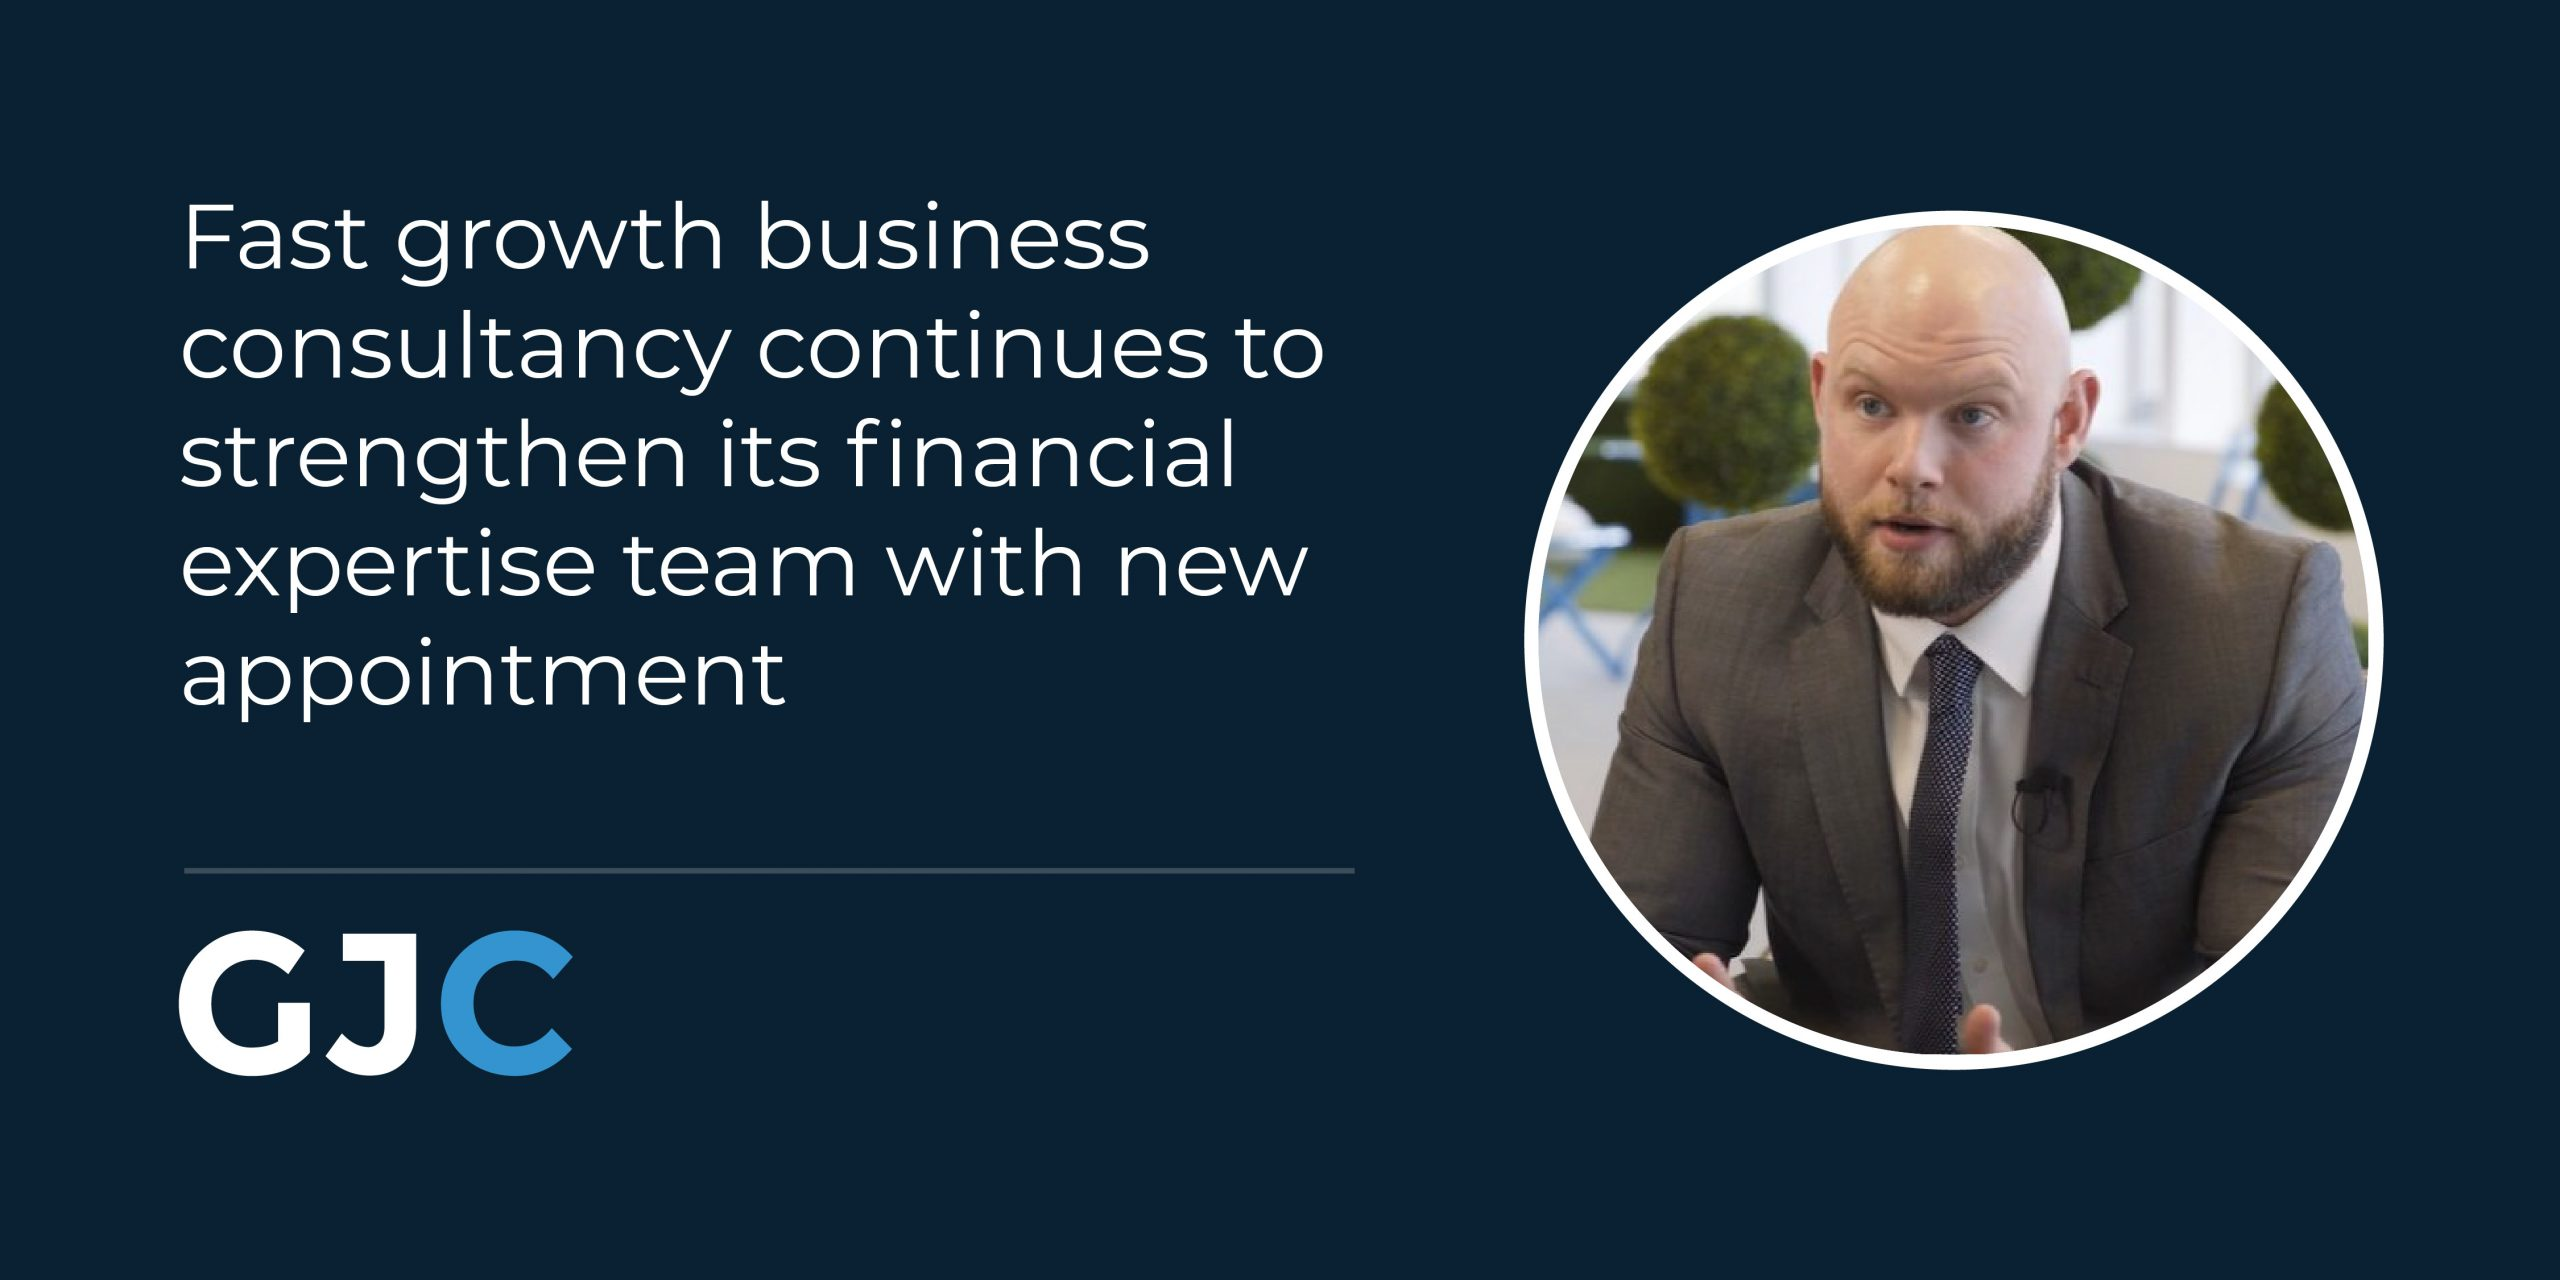 Finance team strengthened with new appointment Ben Kershaw